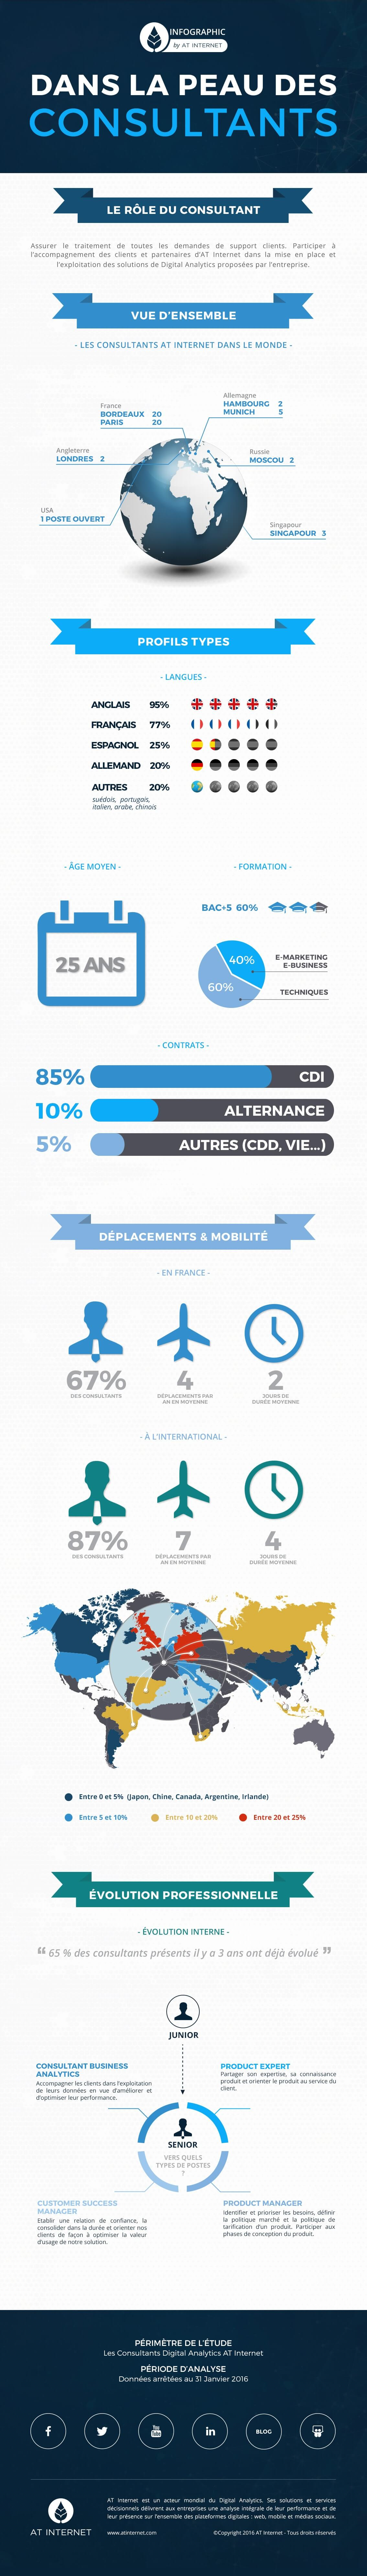 Infographie Consultants